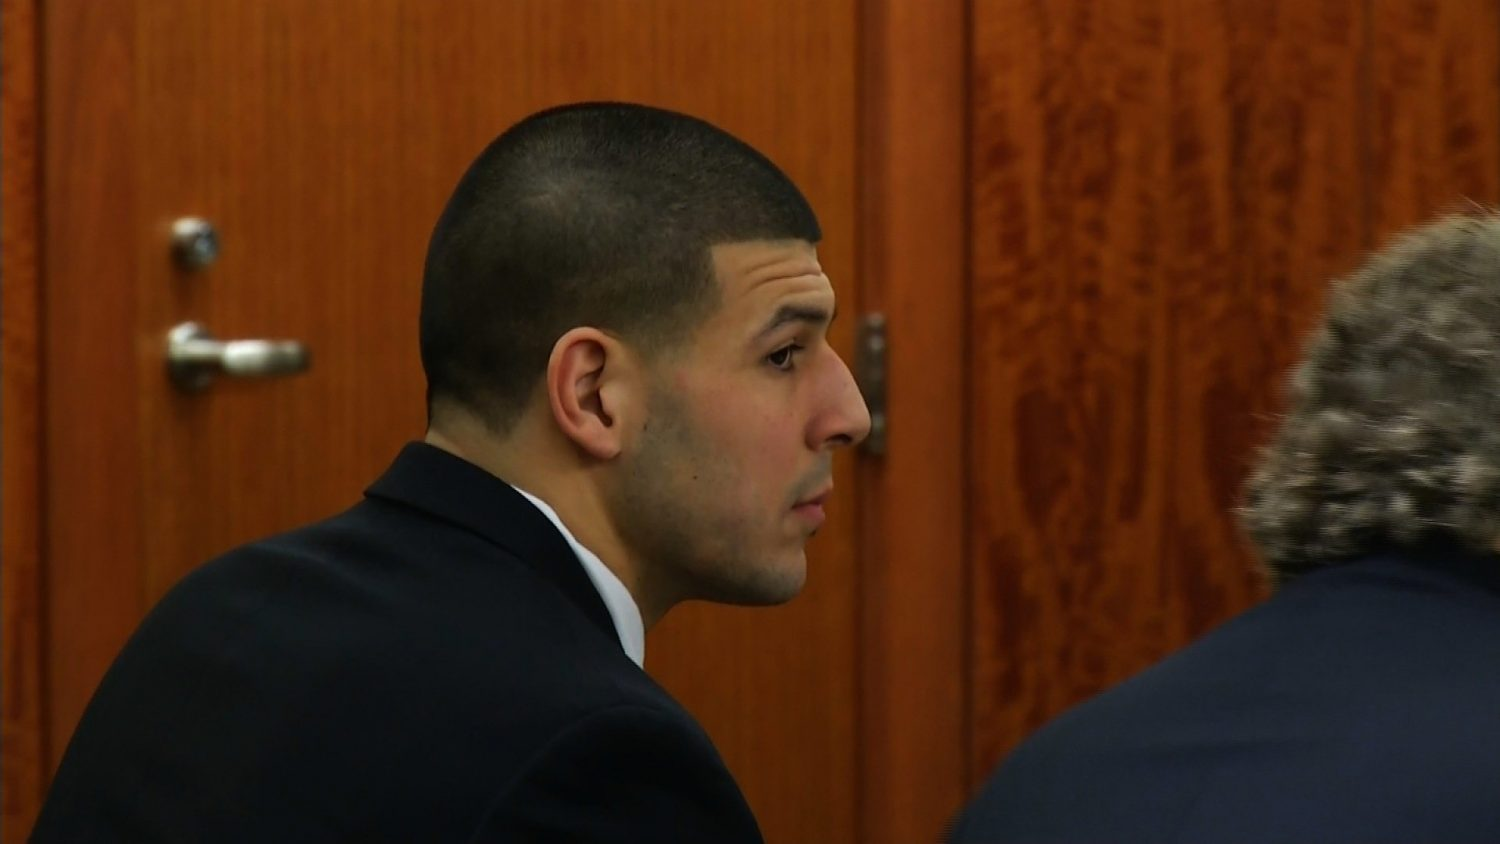 Nfl Player Aaron Hernandez Convicted Of Murder Gets Life Wuft News